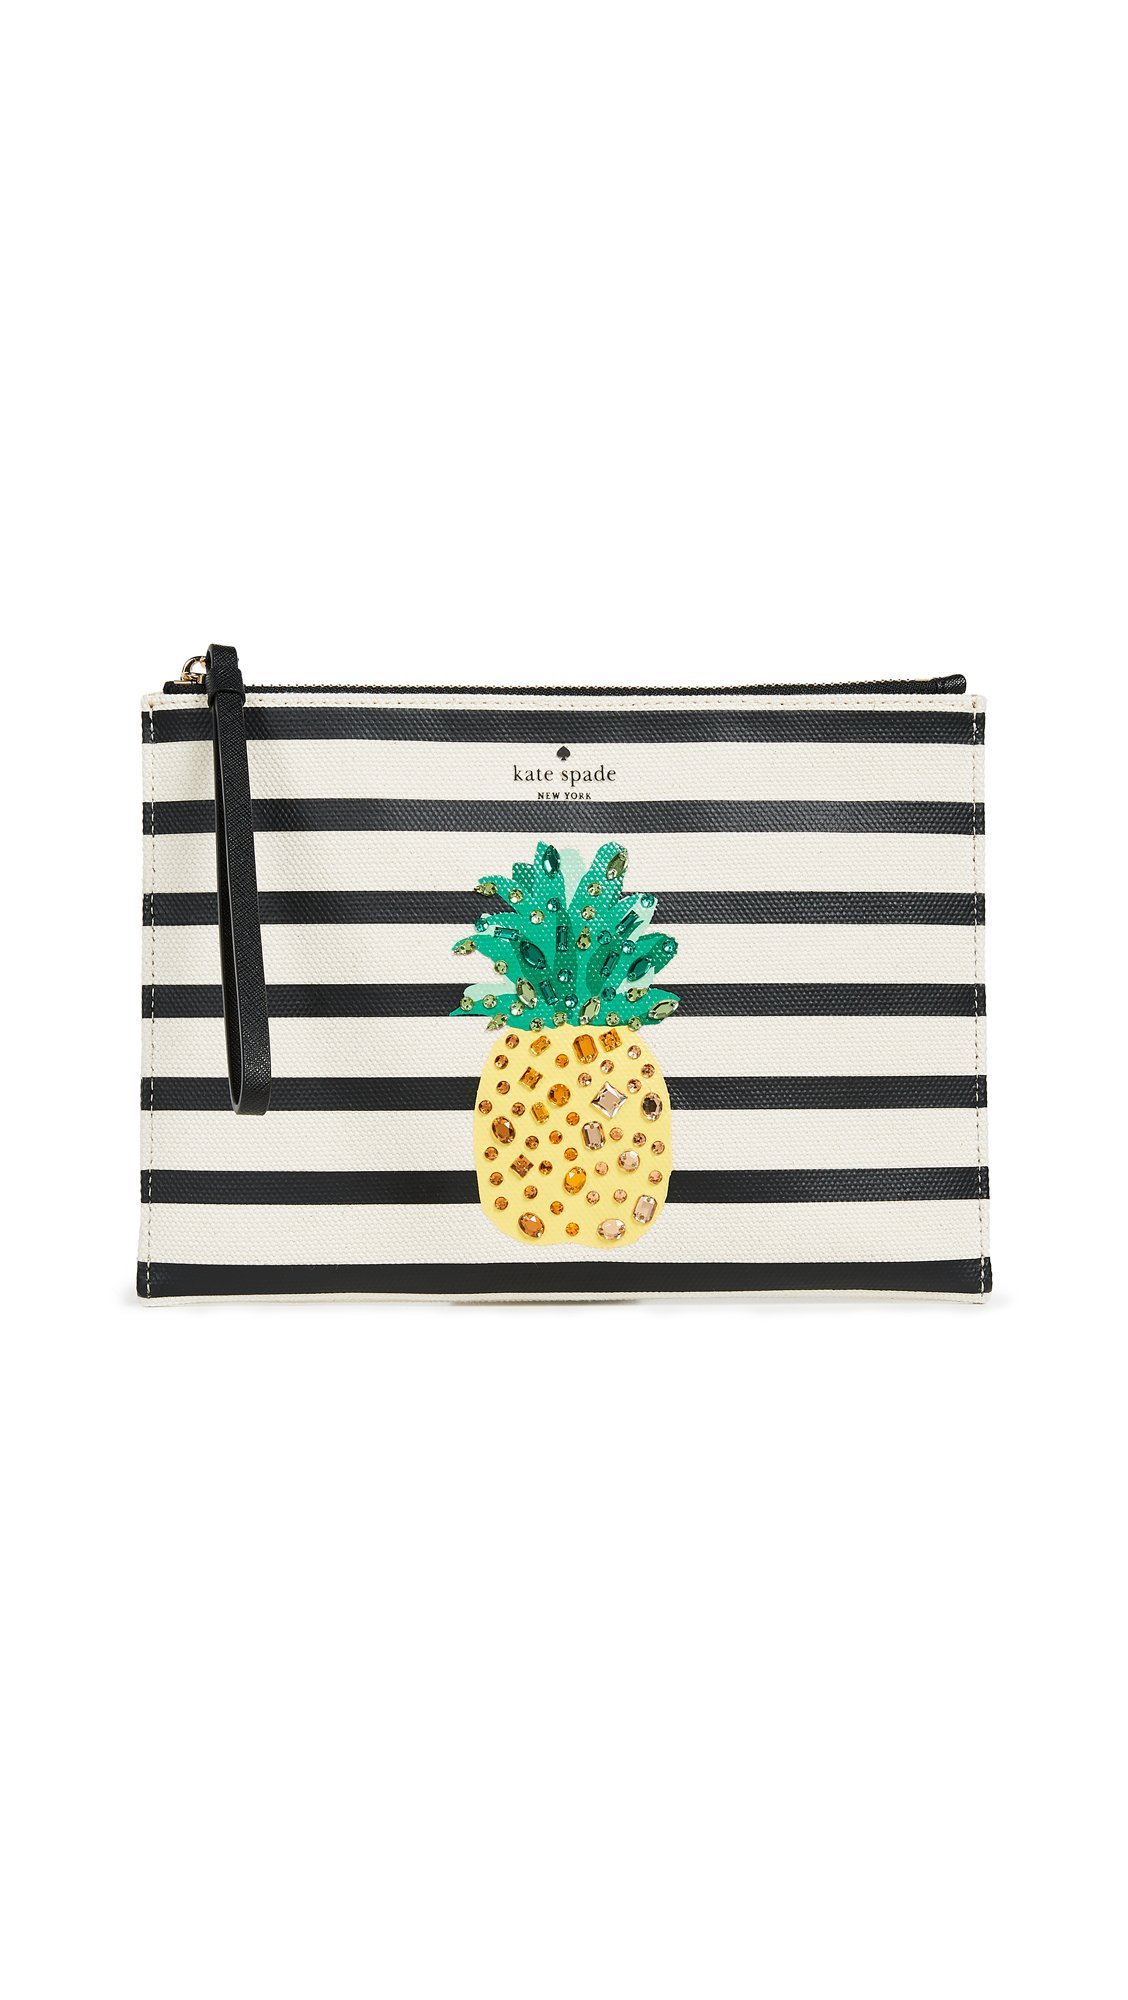 Kate Spade New York Women's By The Pool Pineapple Medium Bella Pouch, Multi, One Size